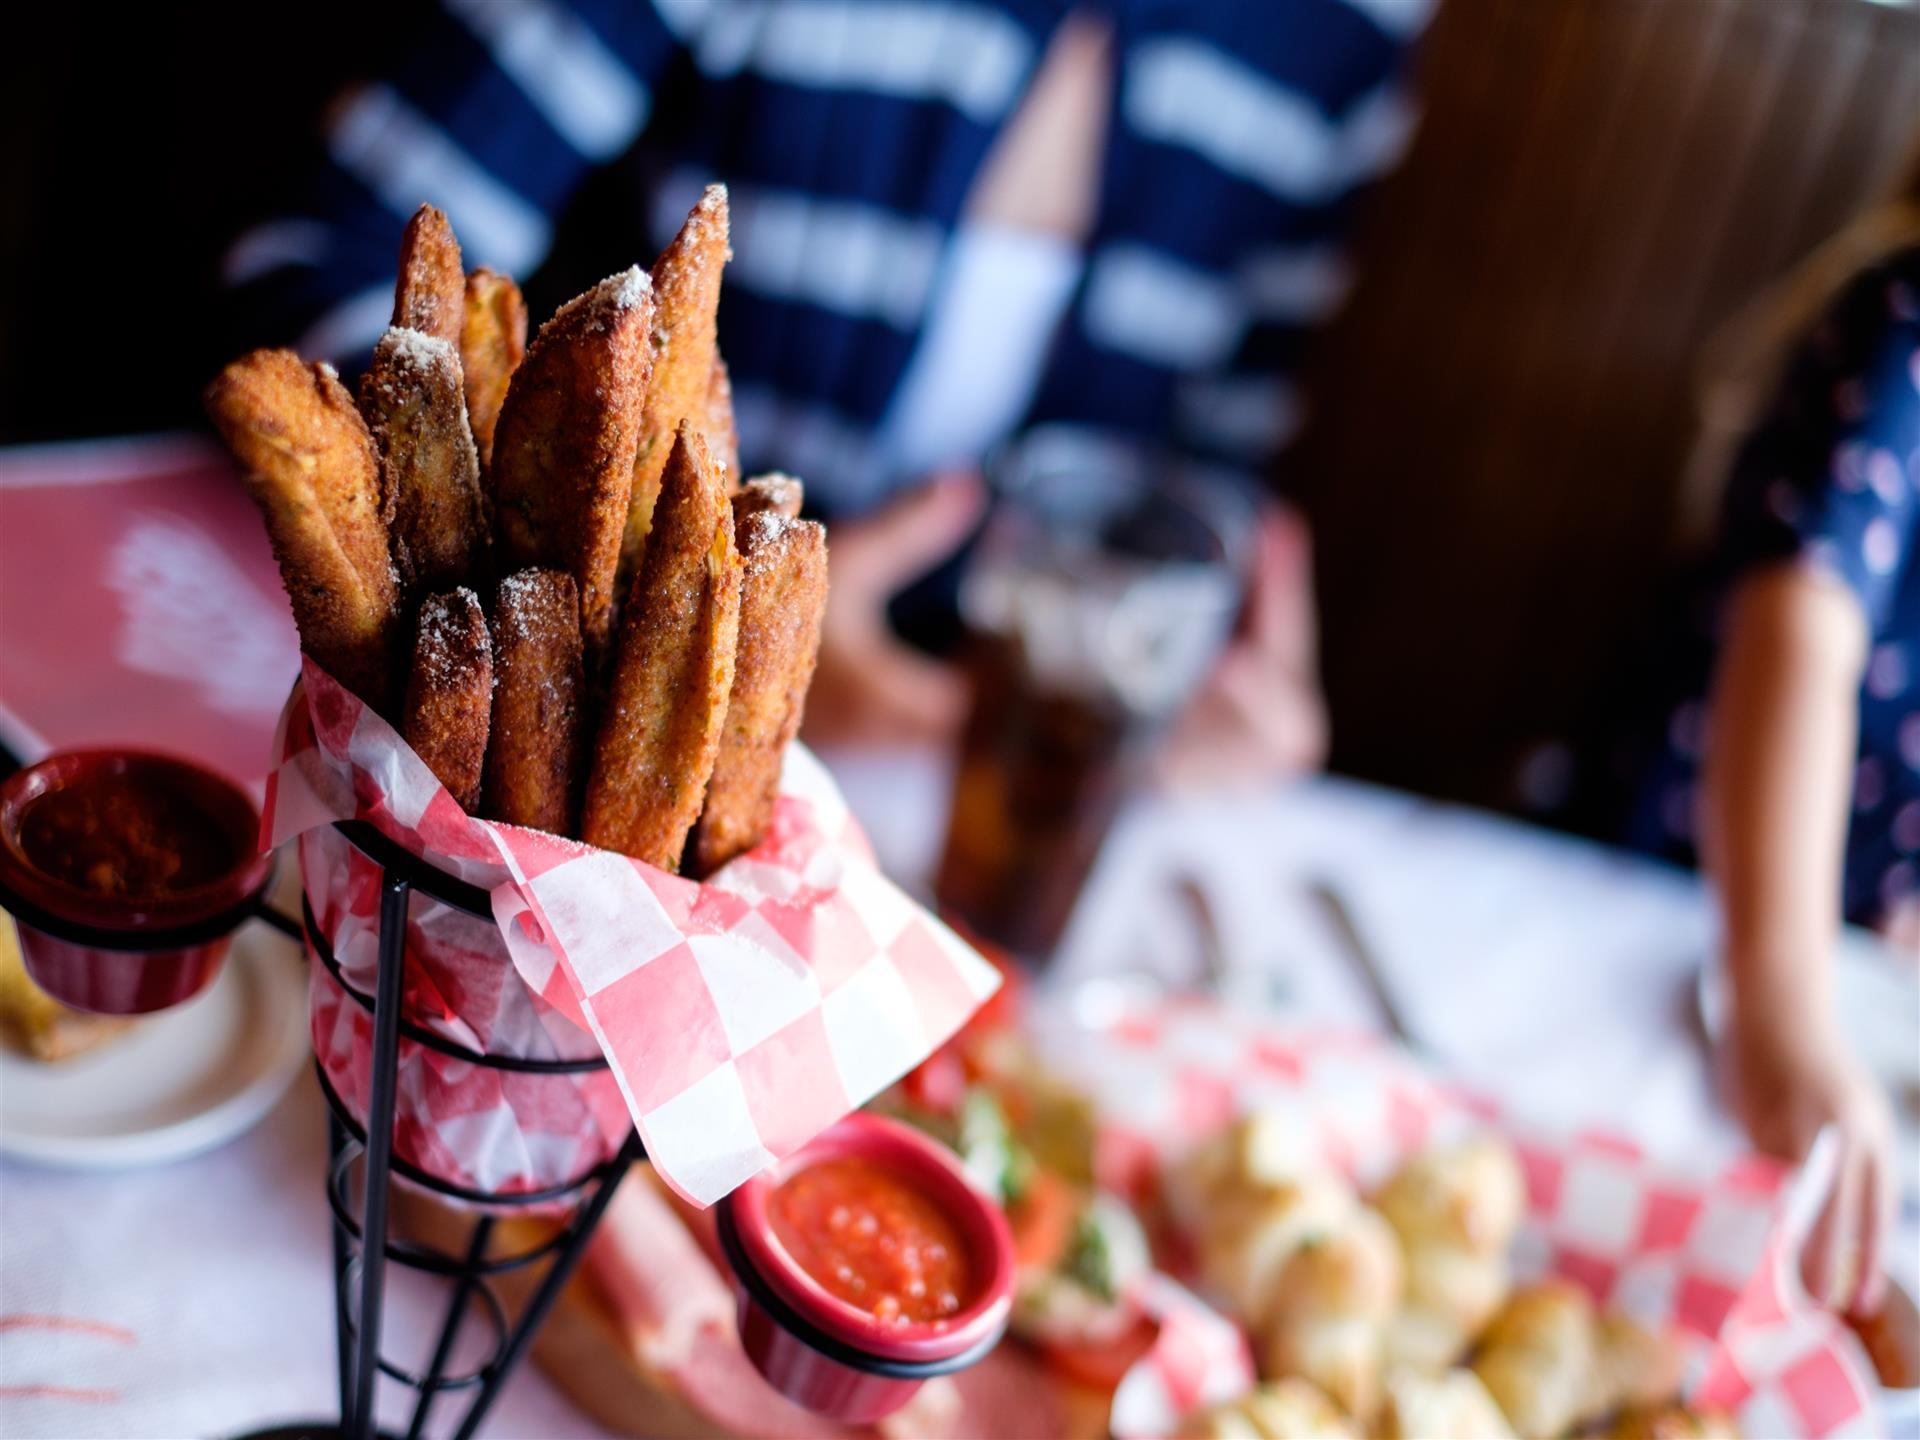 Fries in a standing basket